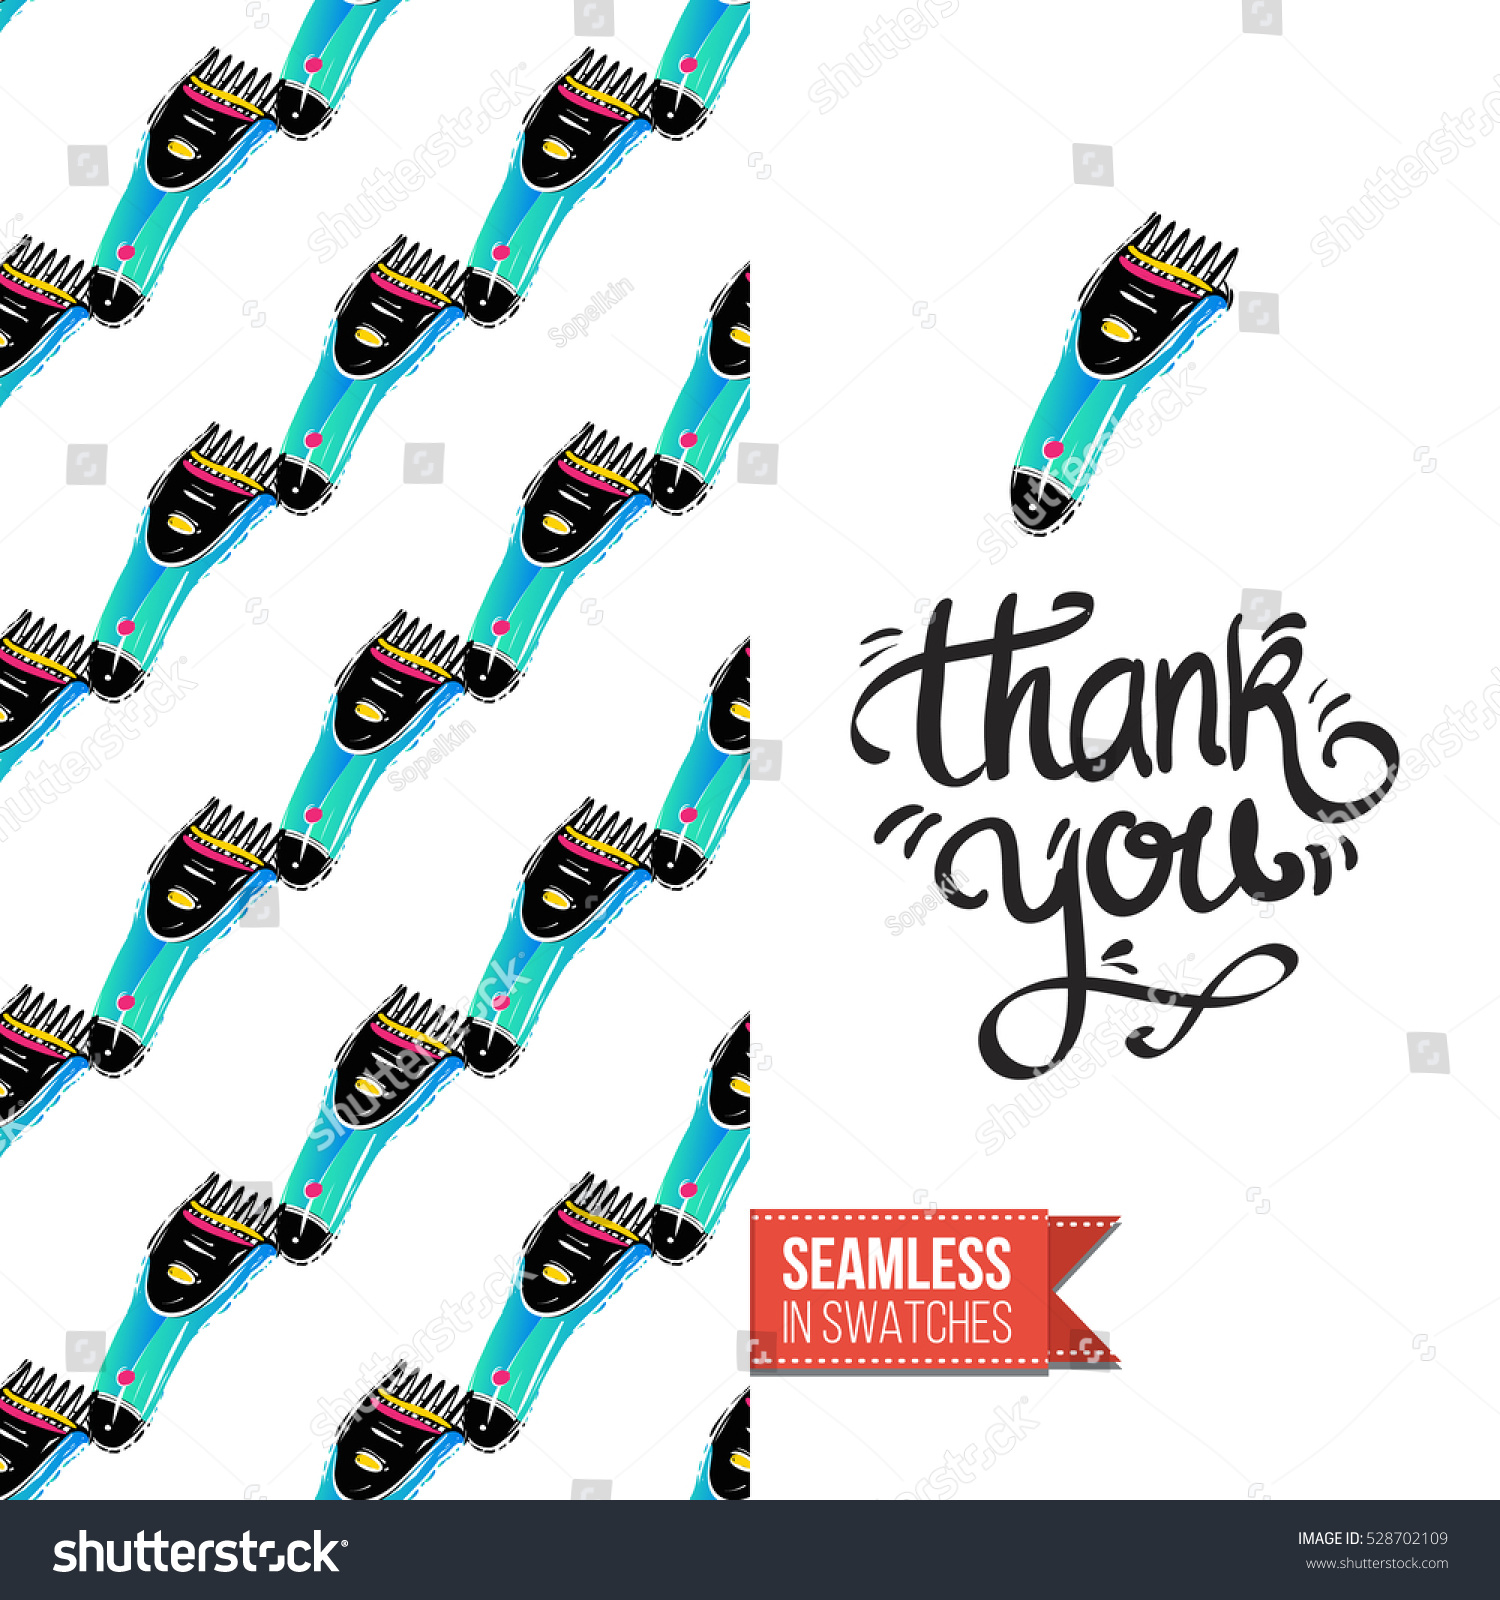 Greeting Card Promotion Beauty Salon Seamless Stock Vector 528702109